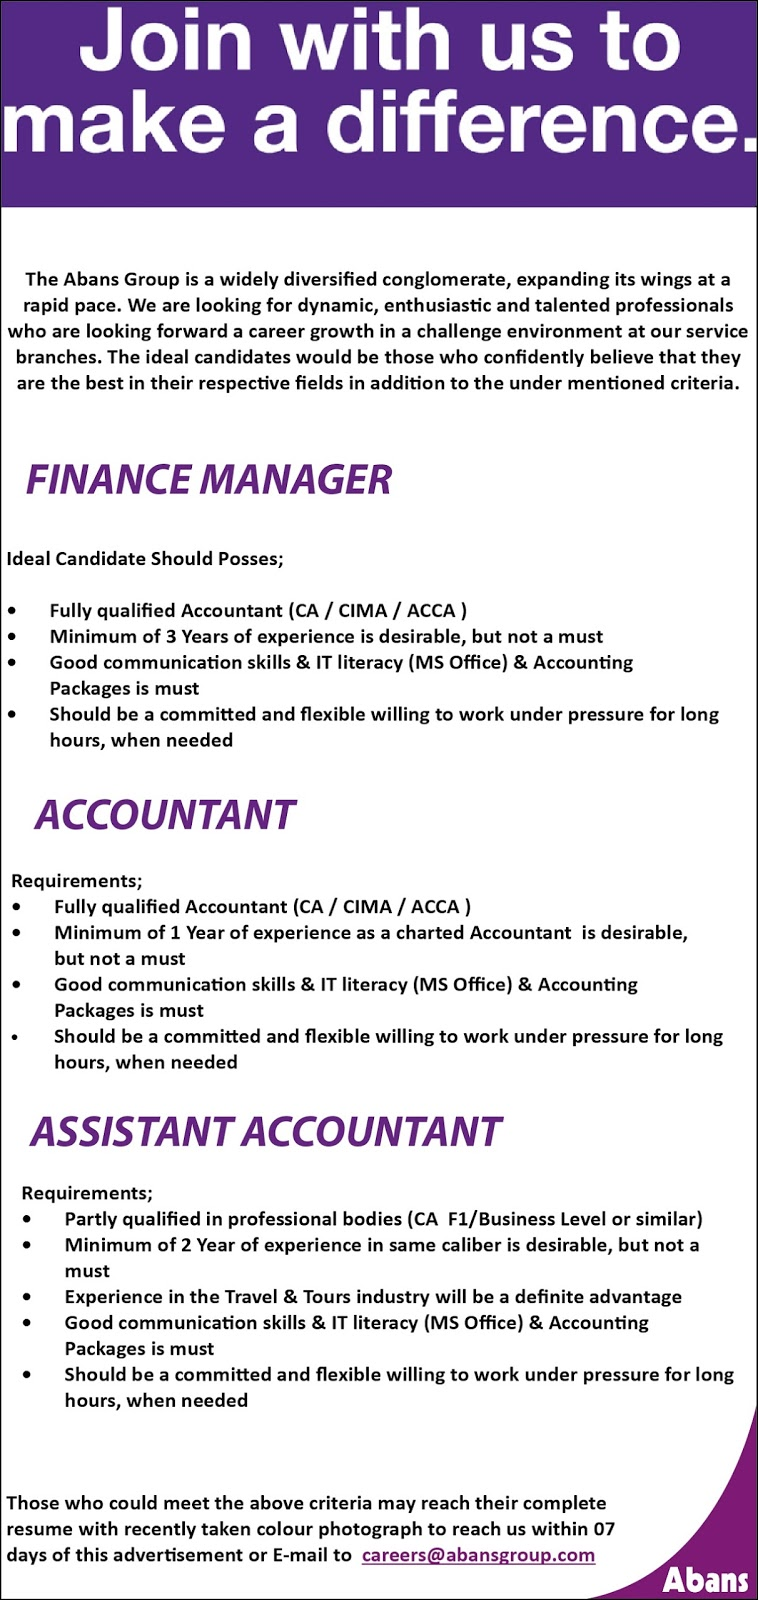 sri lanka vacancies latest vacancies career opportunities careers abansgroup com